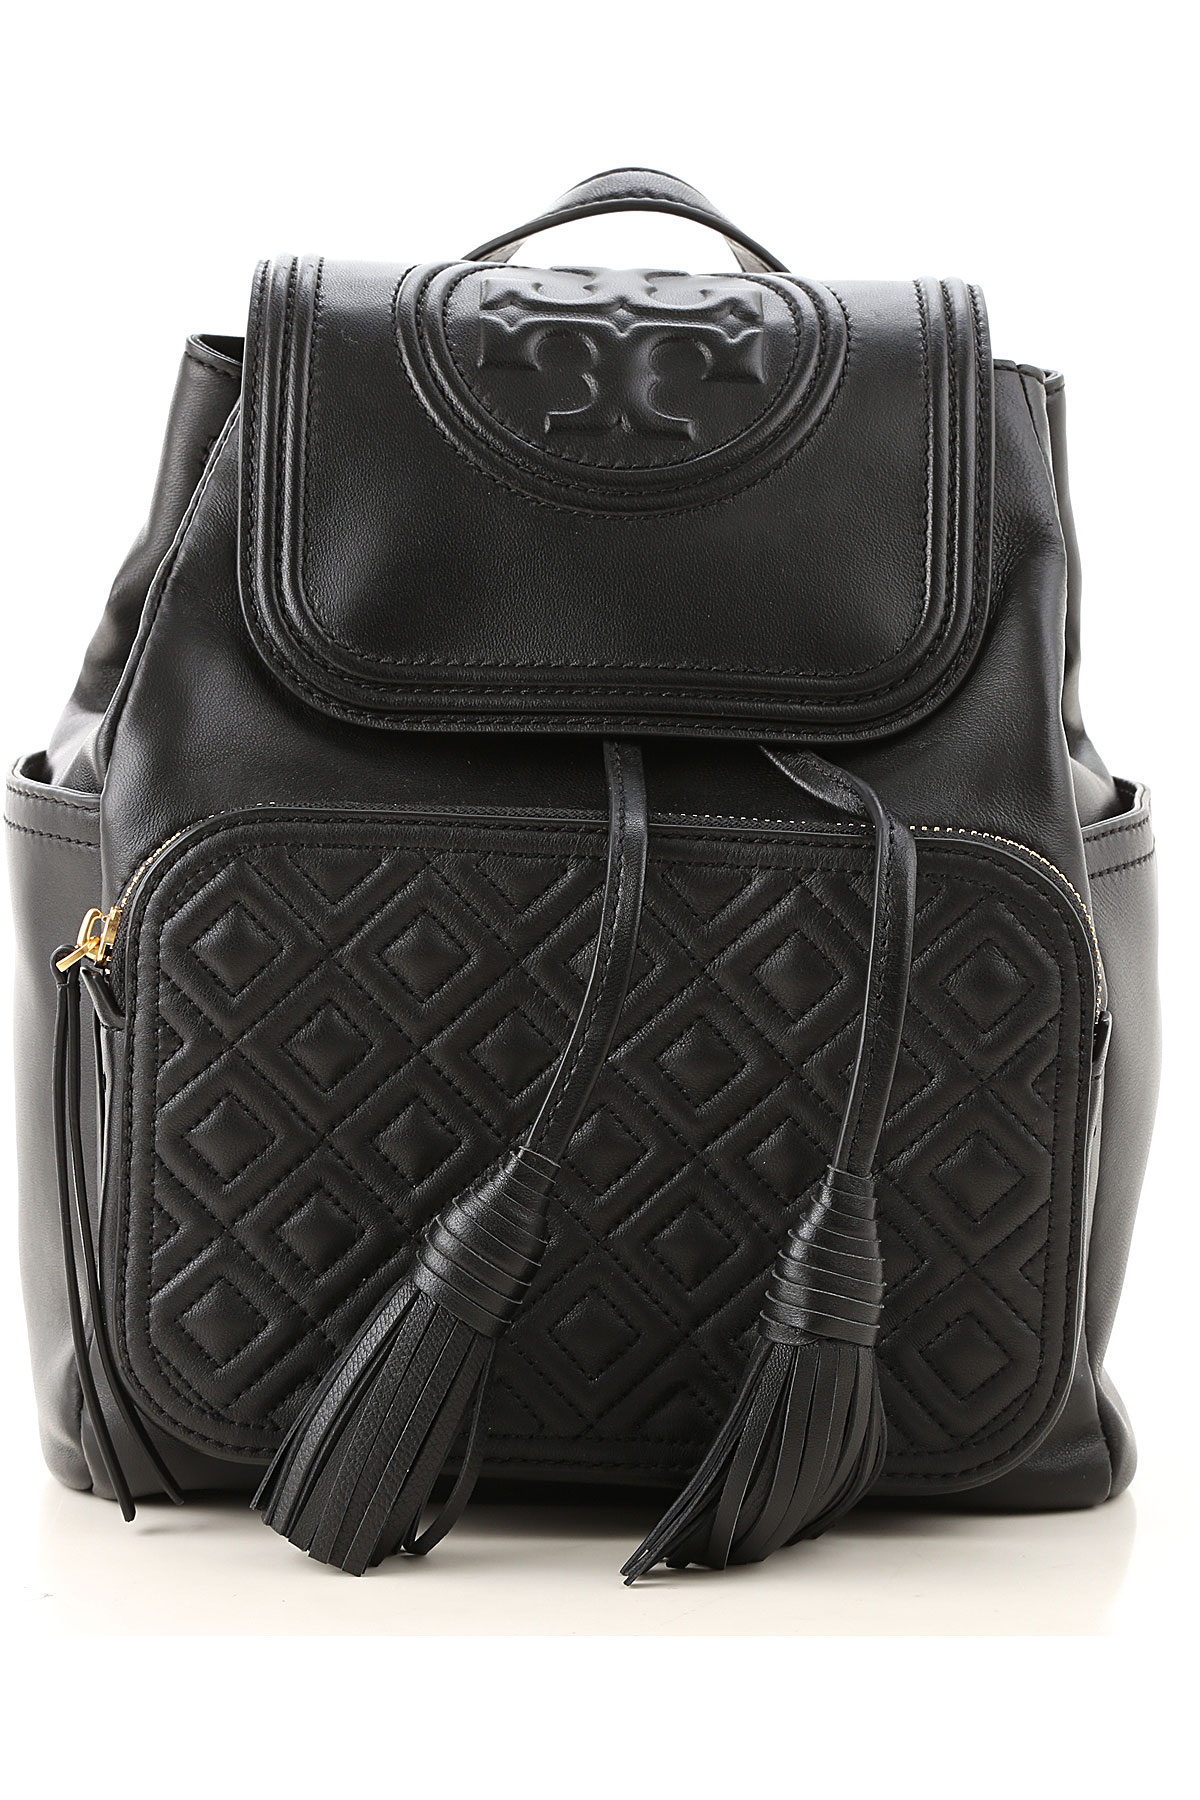 Tory Burch Backpack for Women On Sale, Black, Leather, 2019